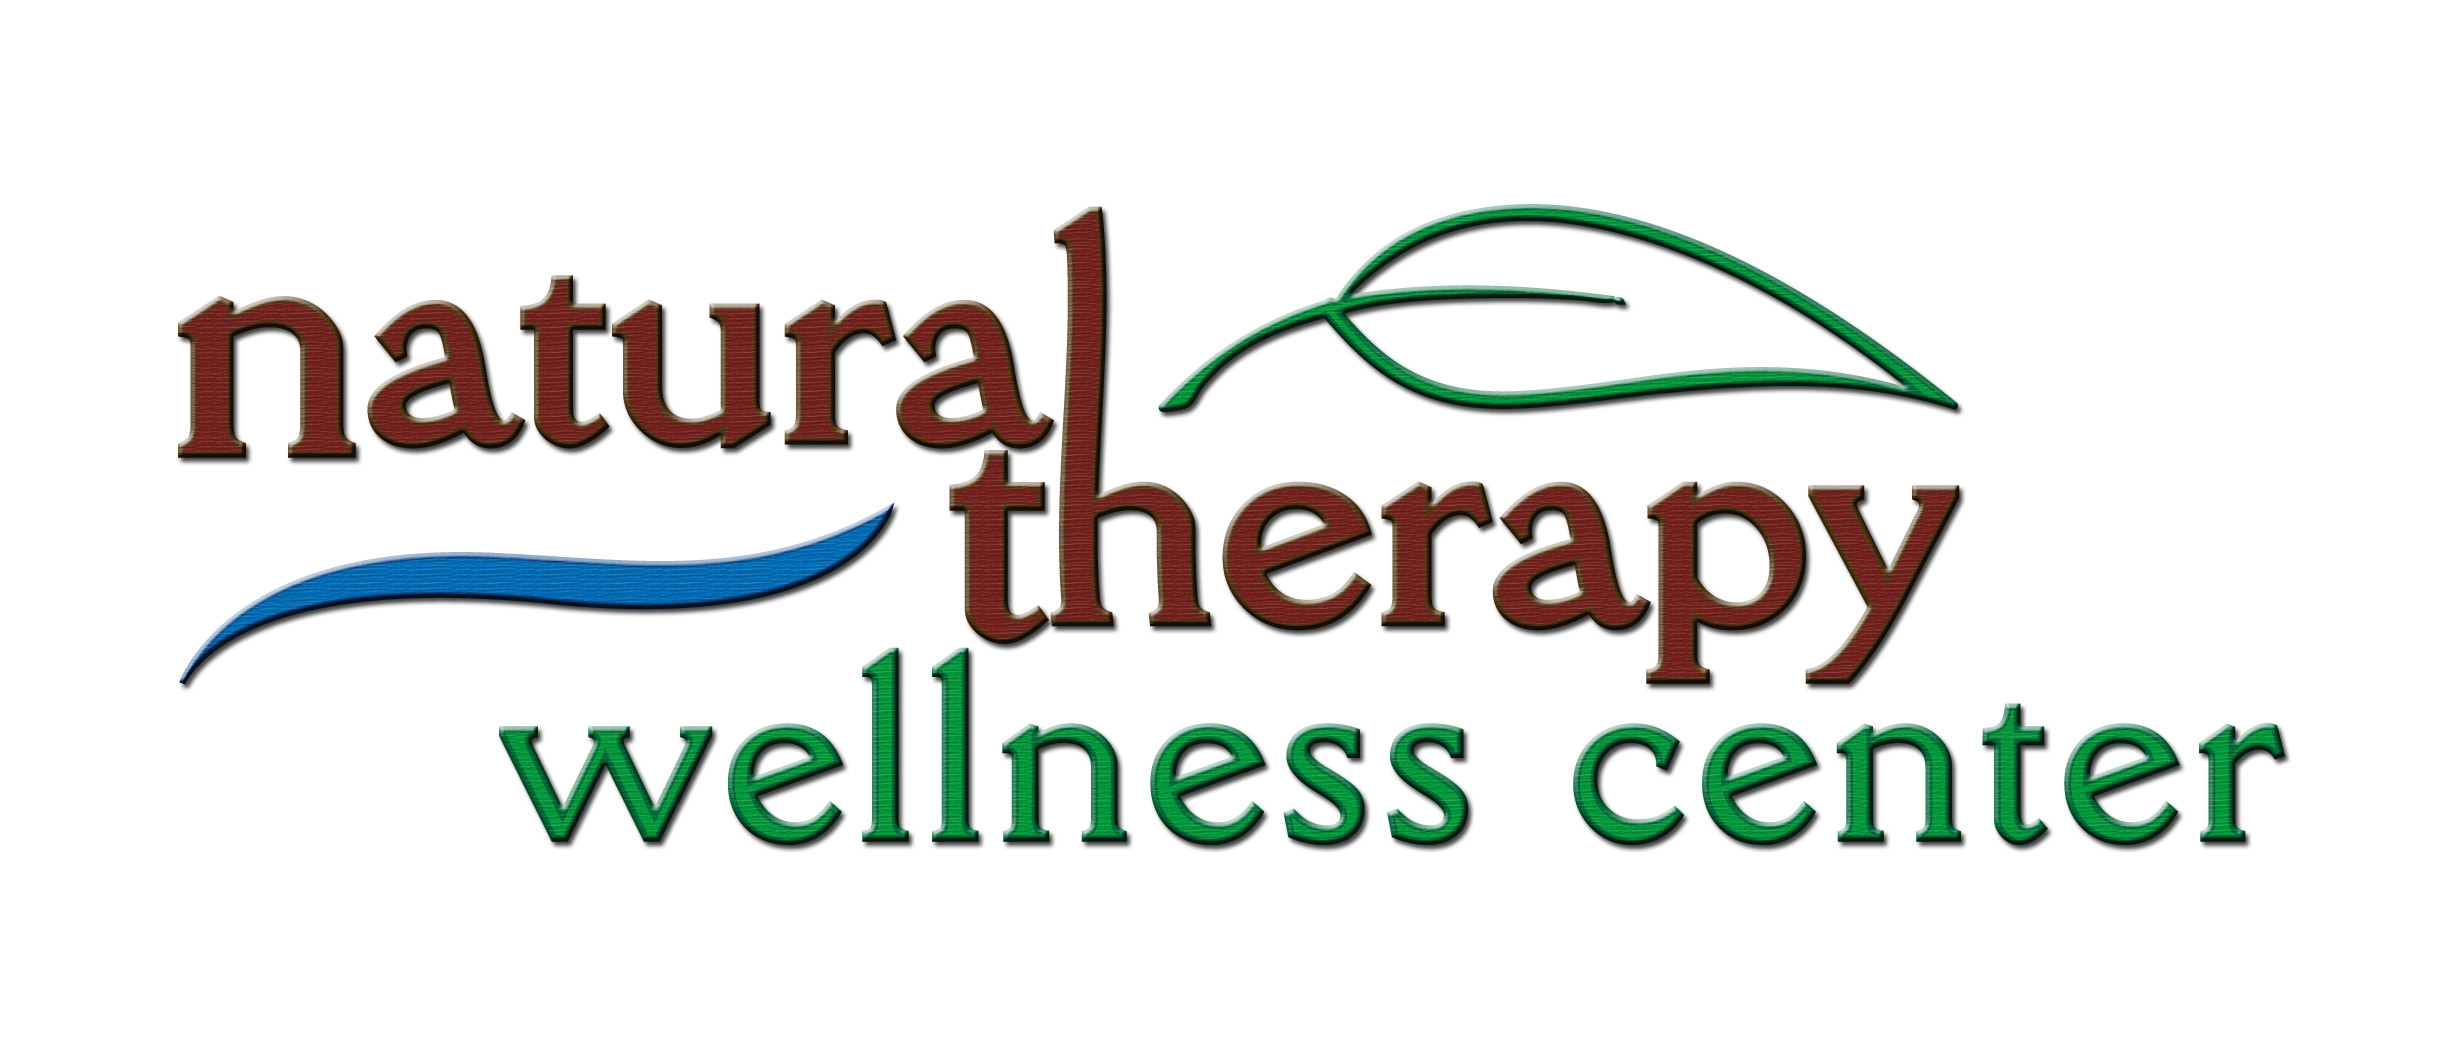 Natural Therapy and Wellness